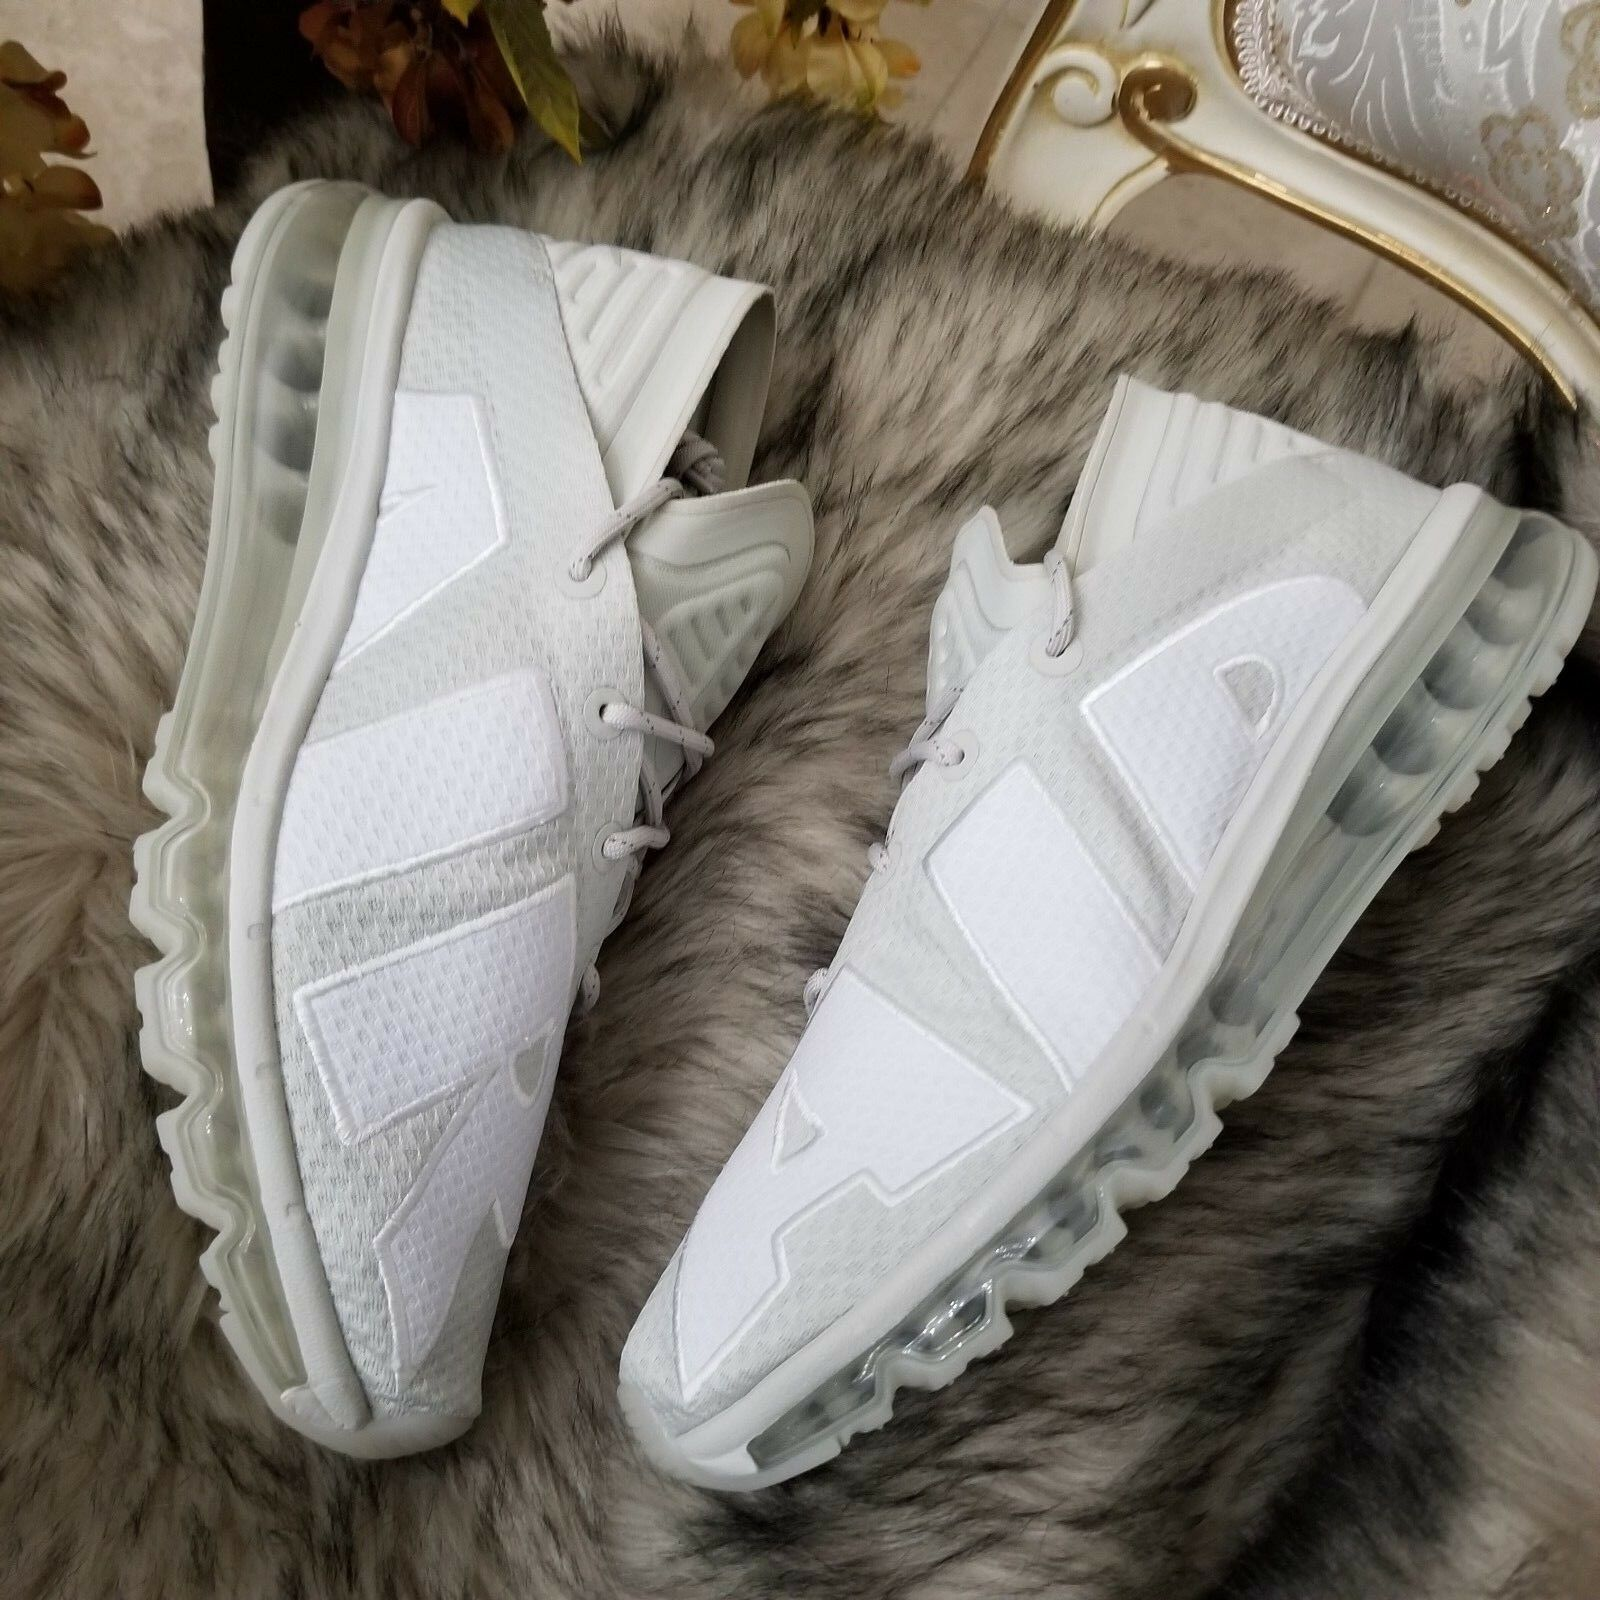 Men's Nike Air Max Flair Running shoes Size 10 Light Bone Style 942236-005